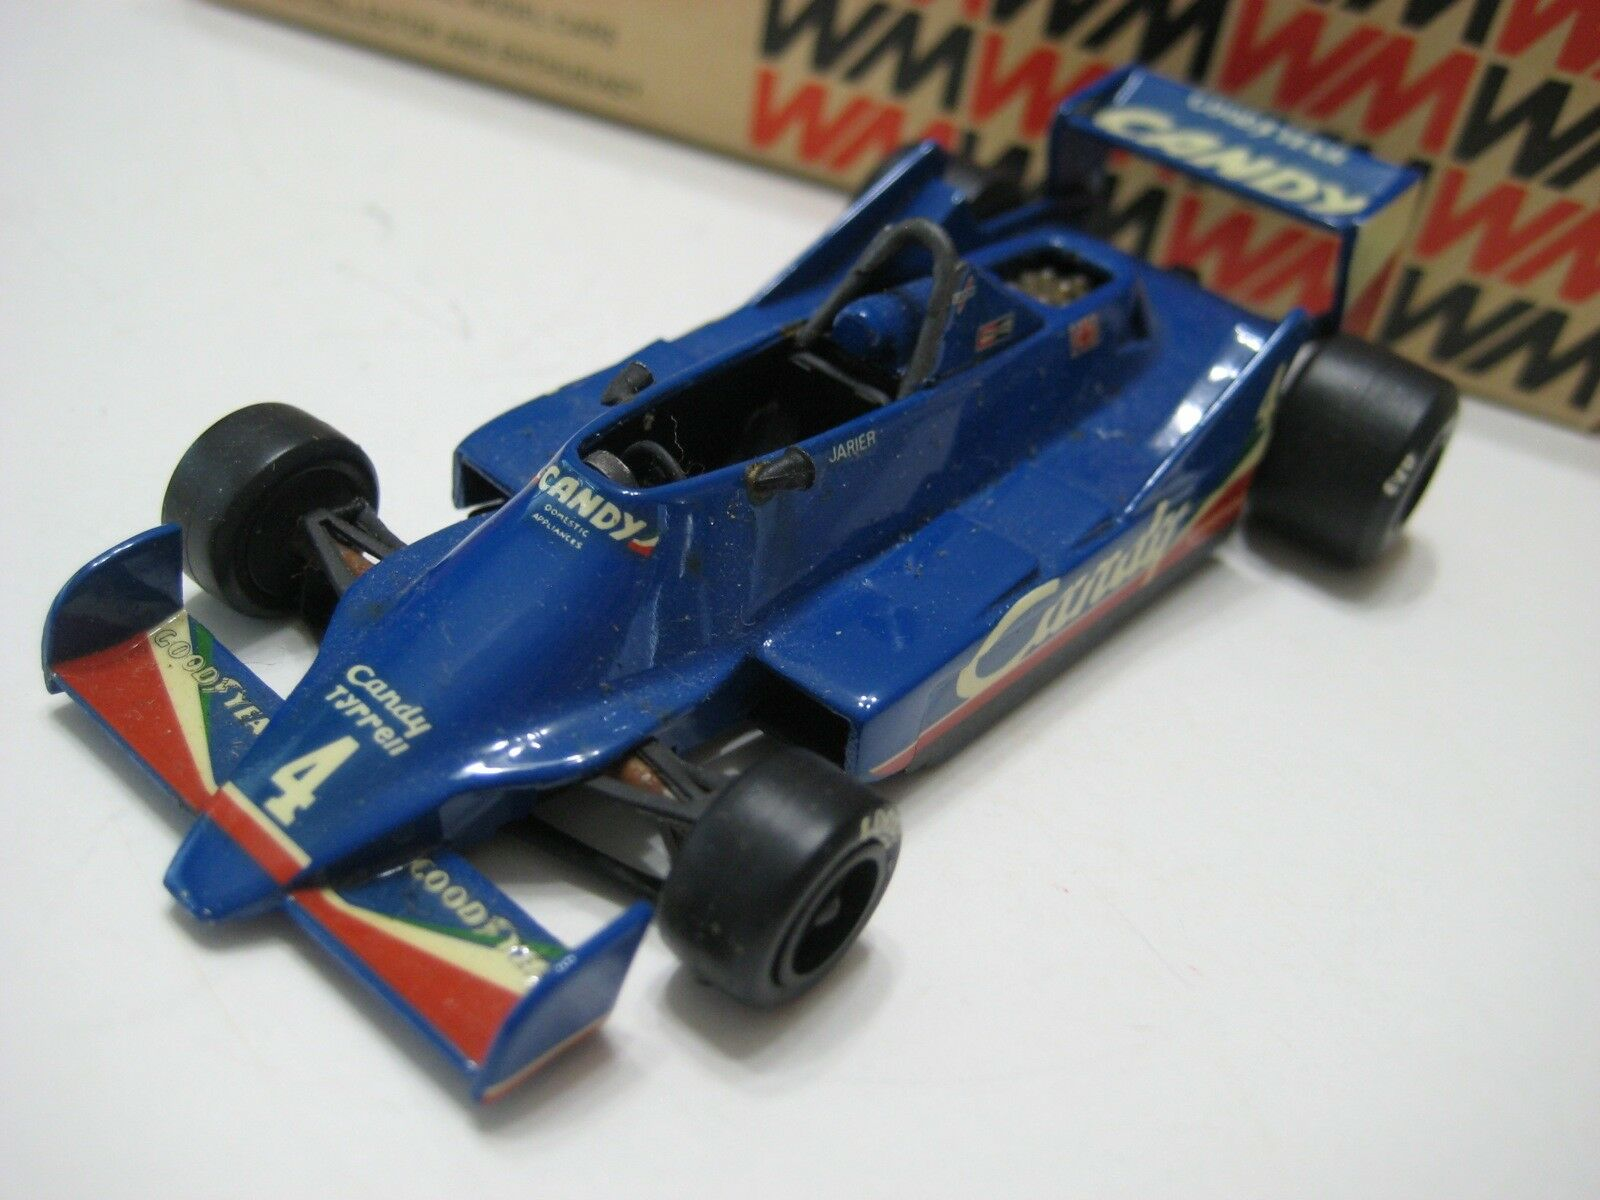 Western Models (England) bluee Tyrrell 009 Candy '79 Diecast 1 43 in Original Box